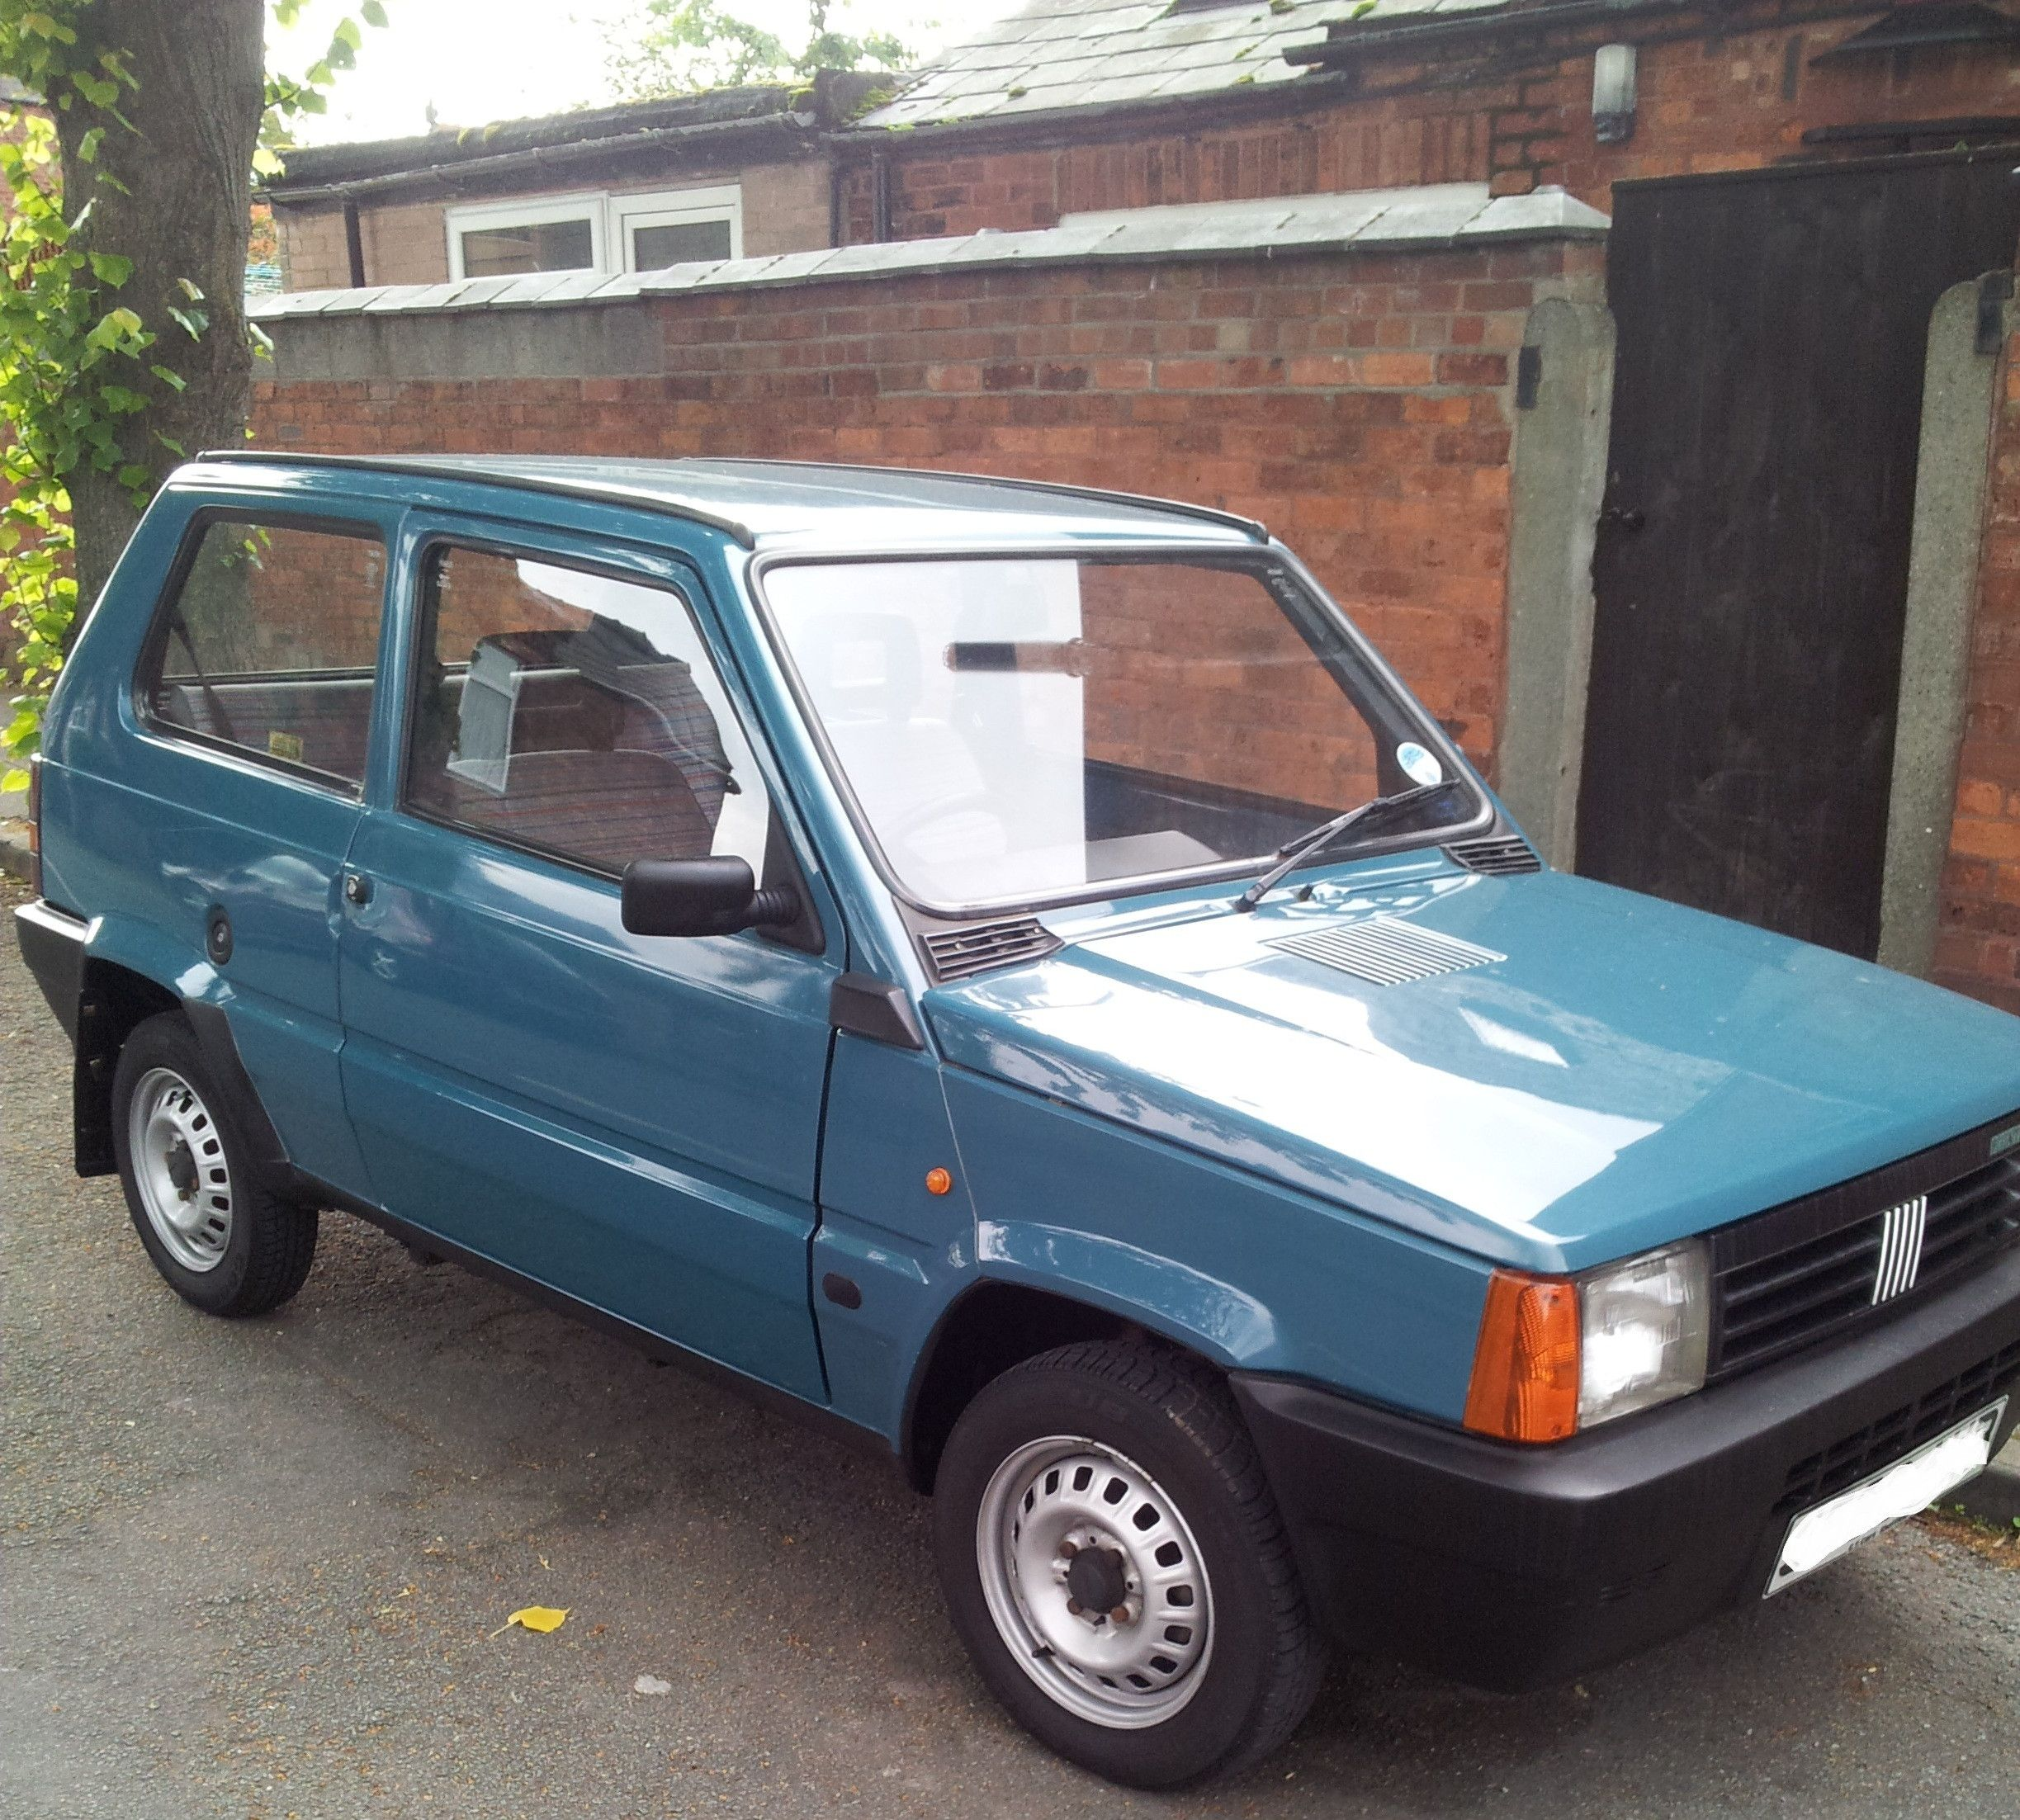 Fiat Panda 750L | Cars I Wish I Owned | Fiat panda, Fiat, Fiat cars